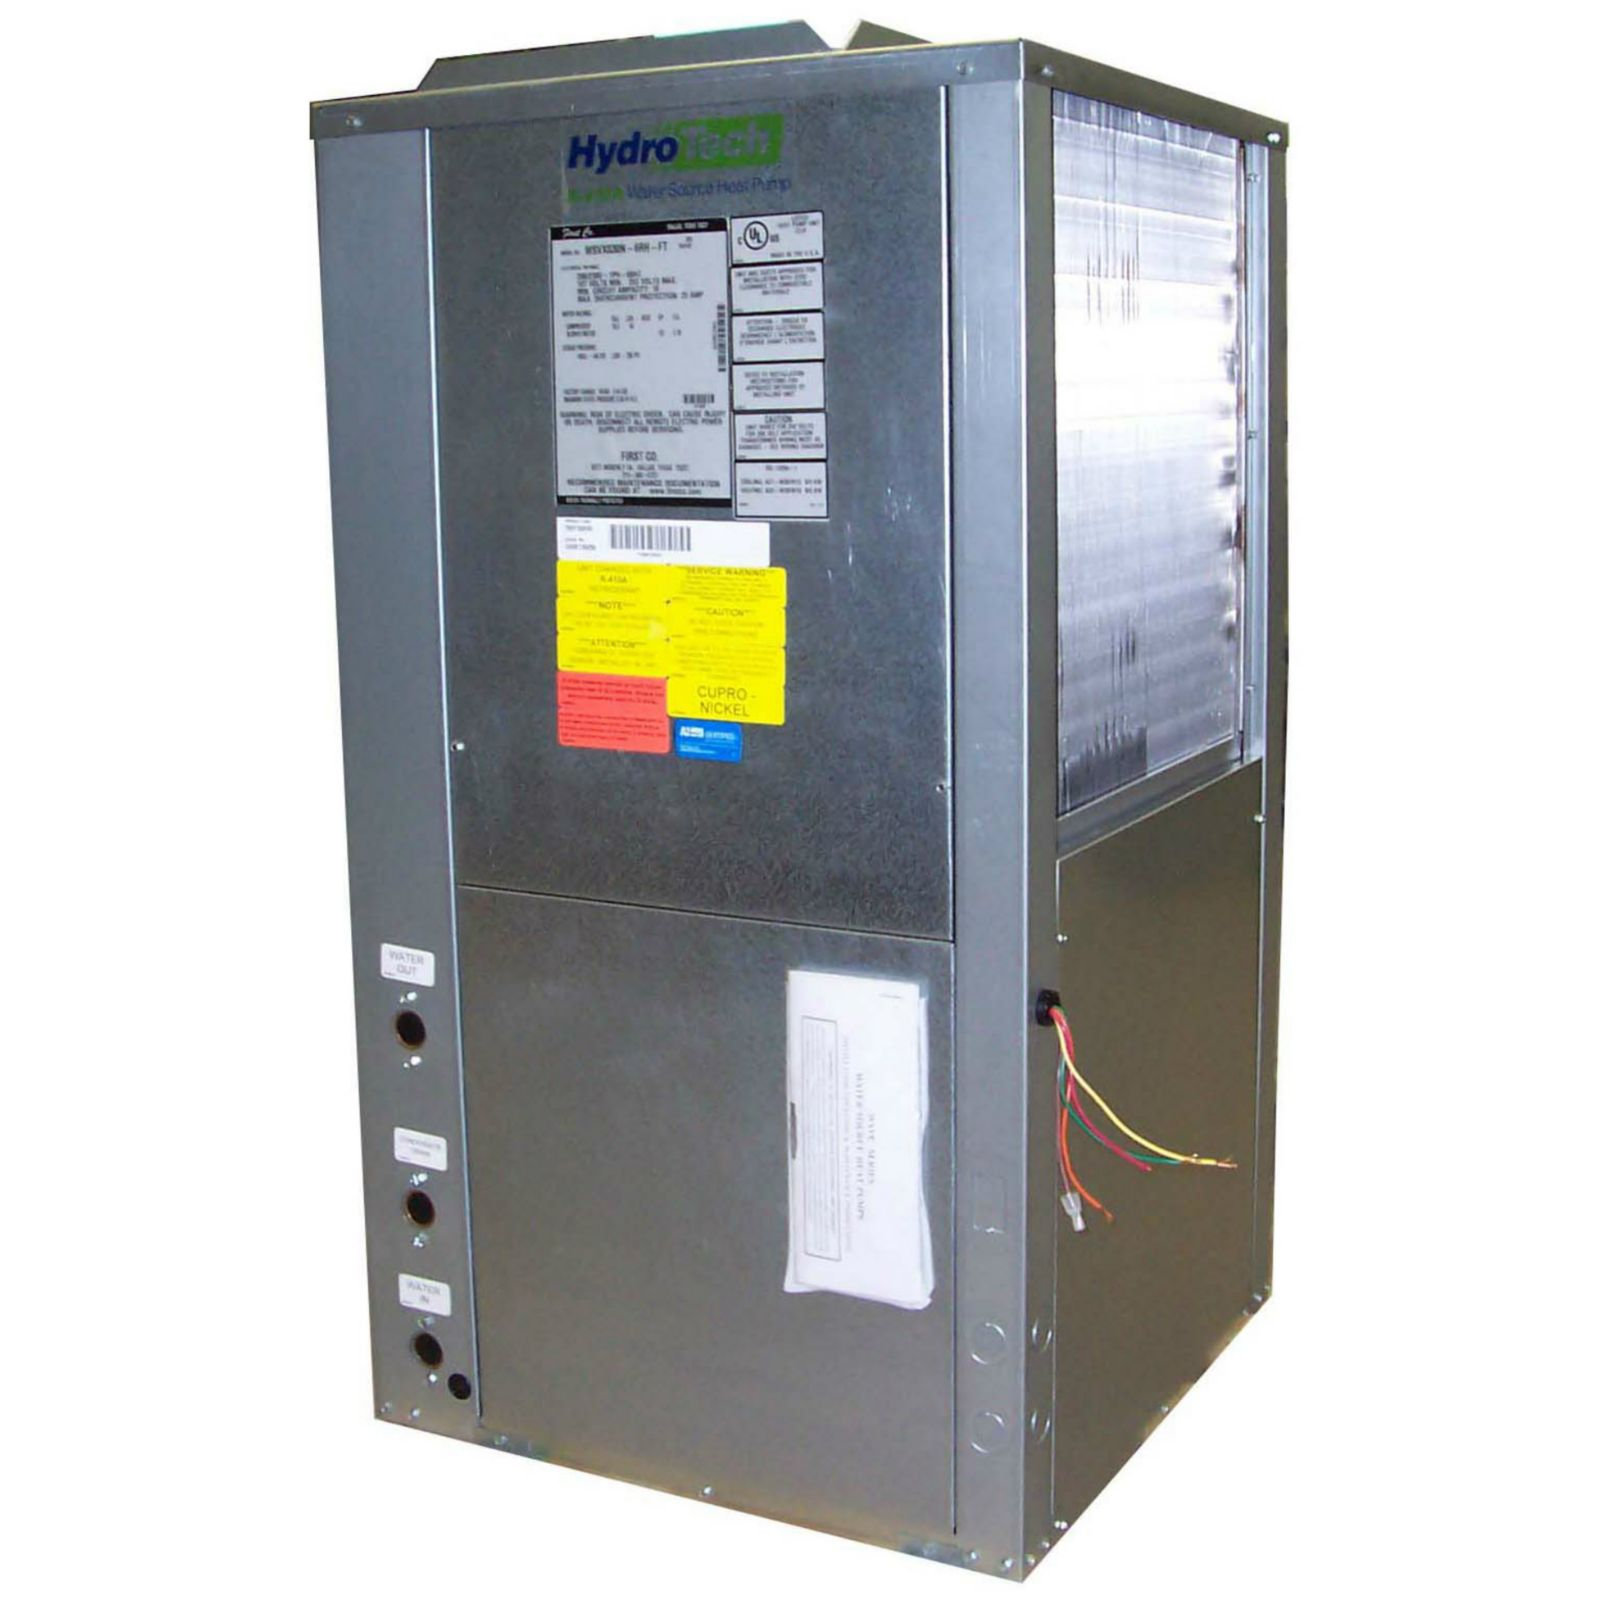 First Co. WSVC048 C E RH FT - Vertical Water Source Heat Pump, 4 Ton, Copper, Right Hand, Top Discharge, 208-230V/3 Phase